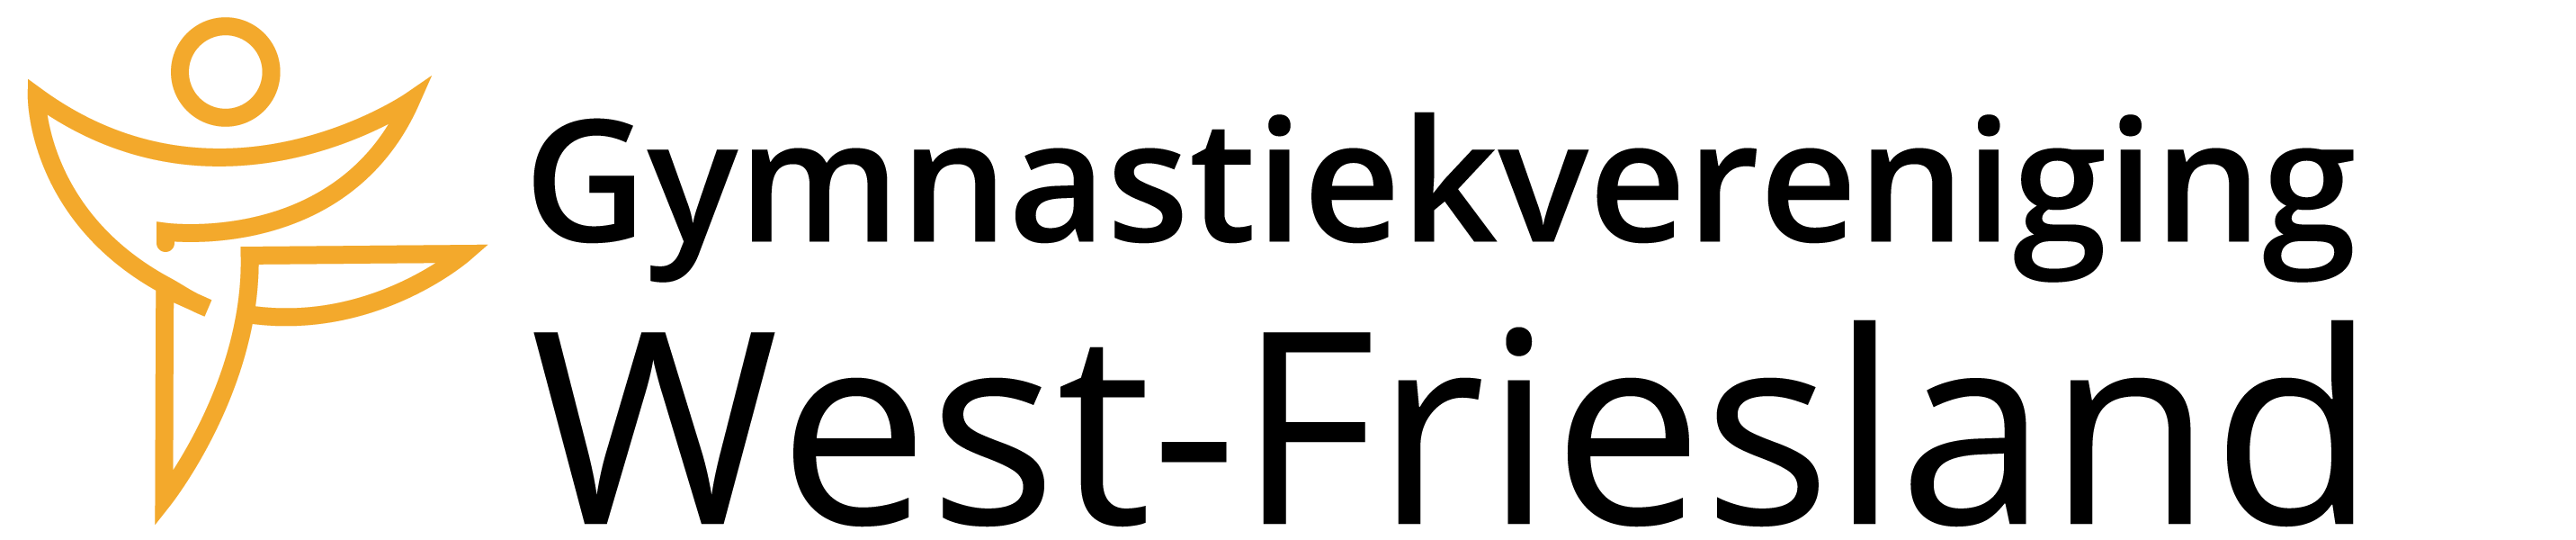 Gymnastiekvereniging West-Friesland